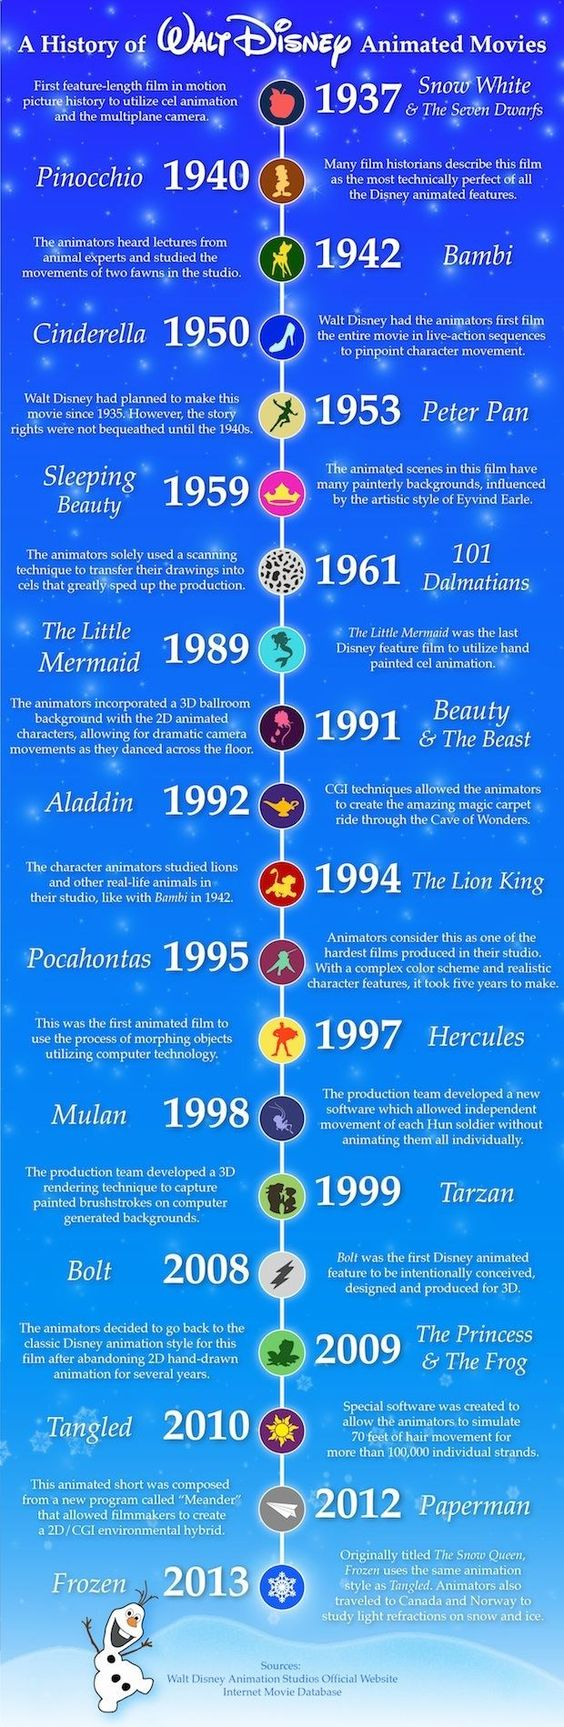 Disney Timeline! I love all of these and its really hard to pick a favorite Disney movie, but I'd have to say that I like the lion king the most with beauty and the beast and the little mermaid close behind!